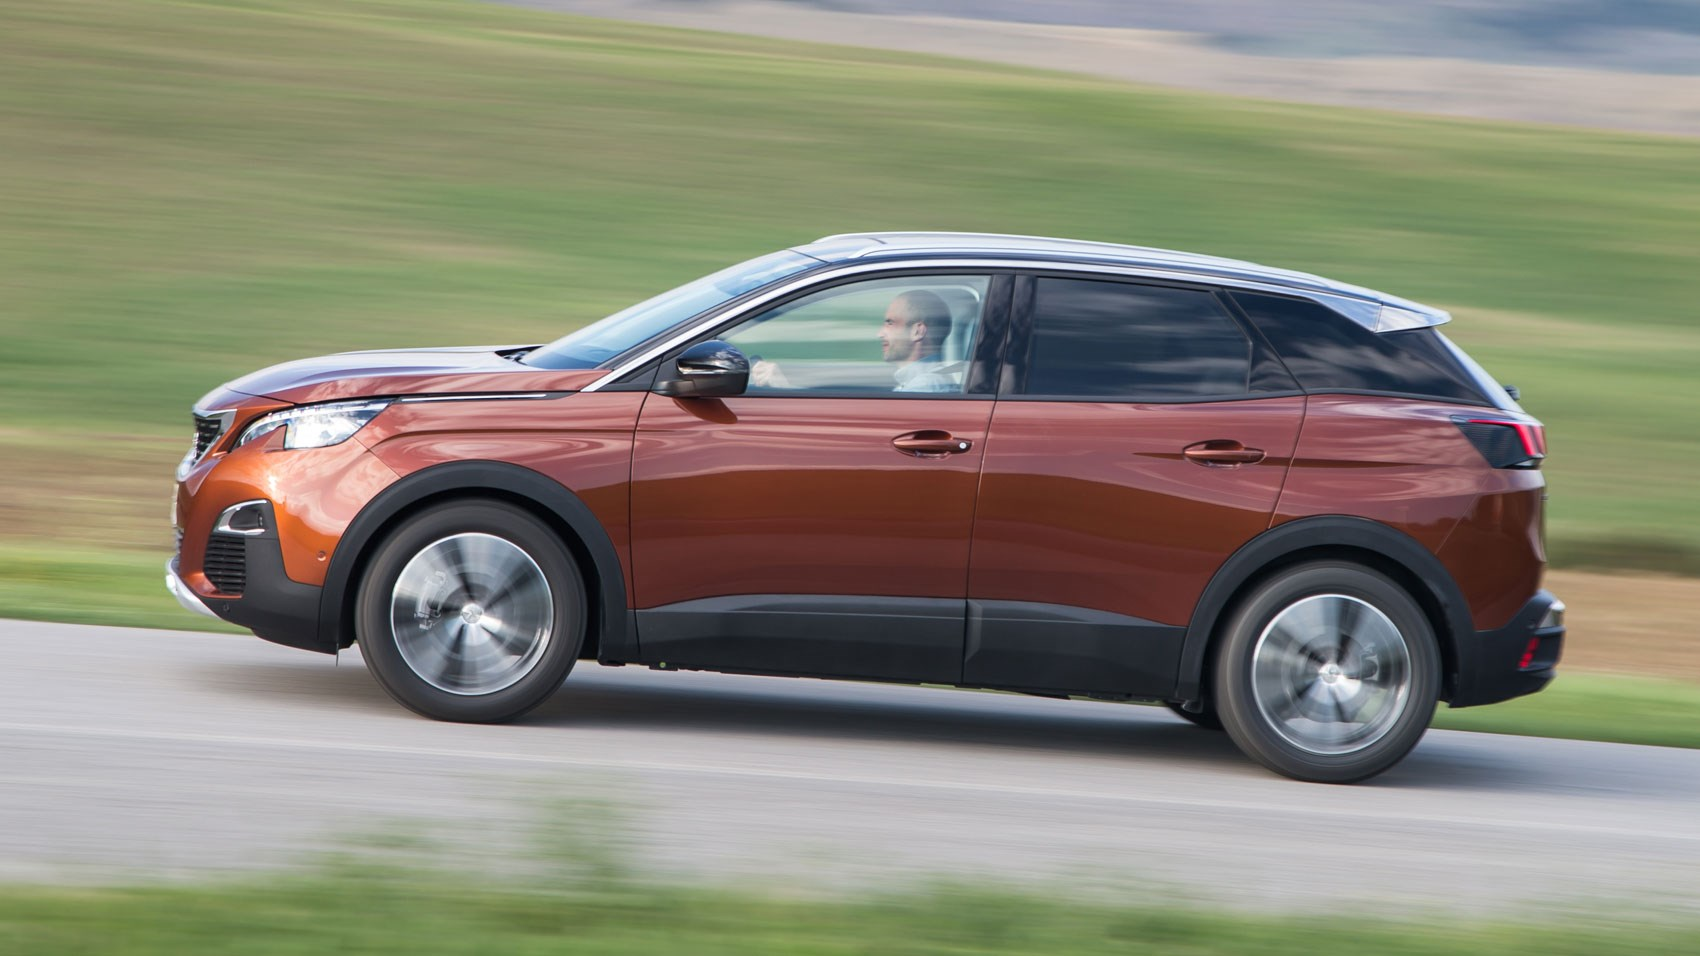 peugeot 3008 1 6 bluehdi 120 s s allure 2016 review by car magazine. Black Bedroom Furniture Sets. Home Design Ideas